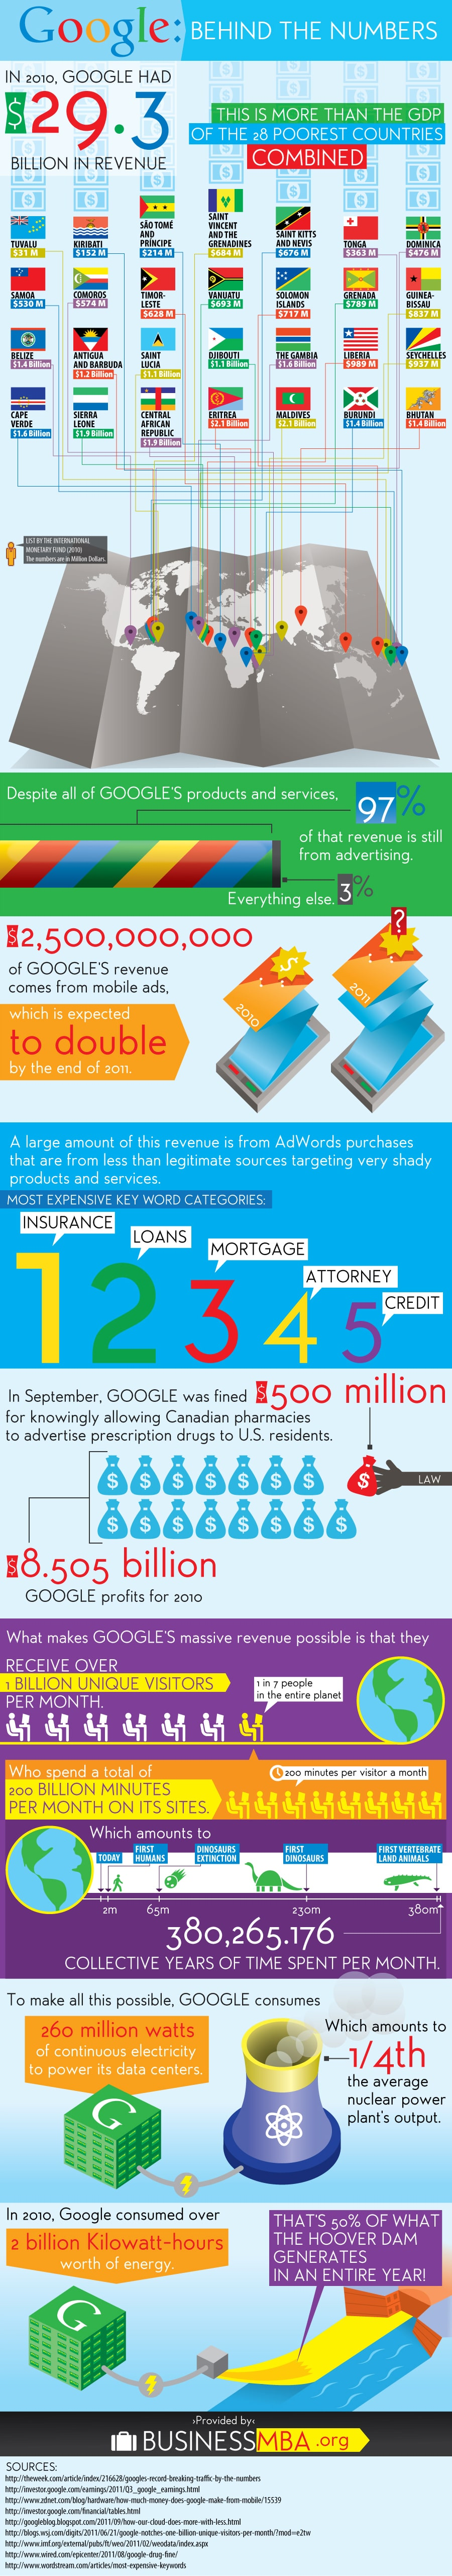 Google Numbers And Facts Infographic